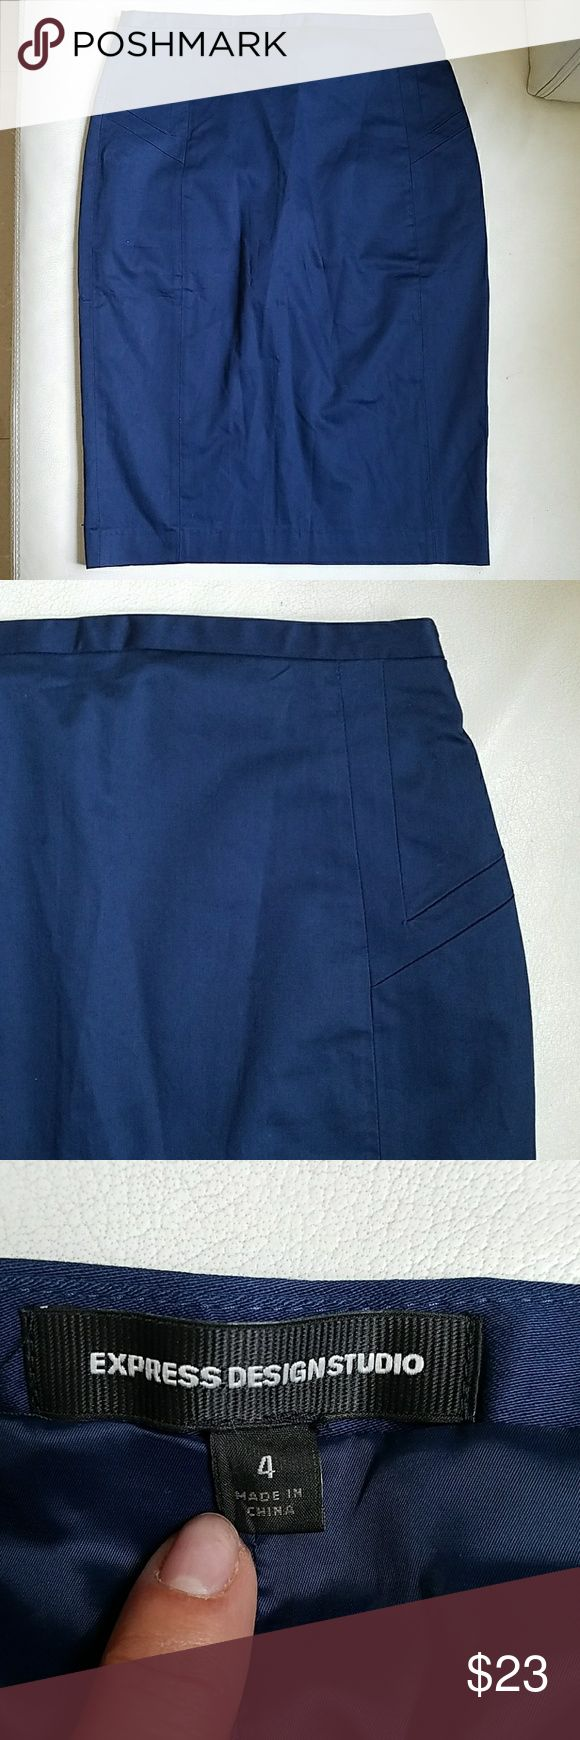 NWOT..Navy blue  pencil skirt Never worn, #new #pencilskirt #skirt #size4 #express #navy invisible zipper on the side, 99%cotton with 1% spandex. Lined. Its really nice. Express Design Studio Skirts Pencil